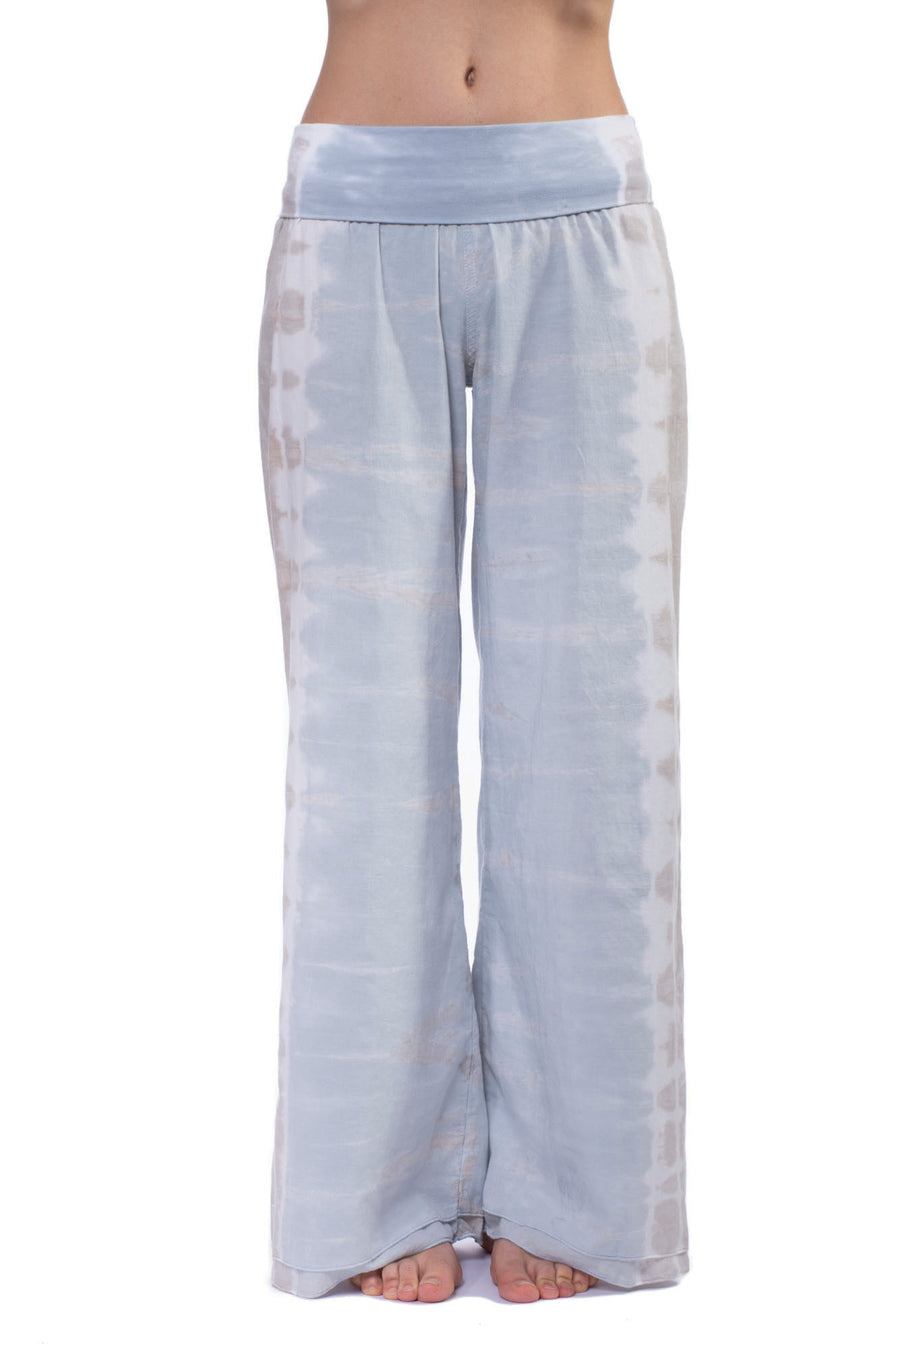 Double Dry Voile Roll Down Pant (Style VL-29, Tie-Dye ESS2) by Hard Tail Forever